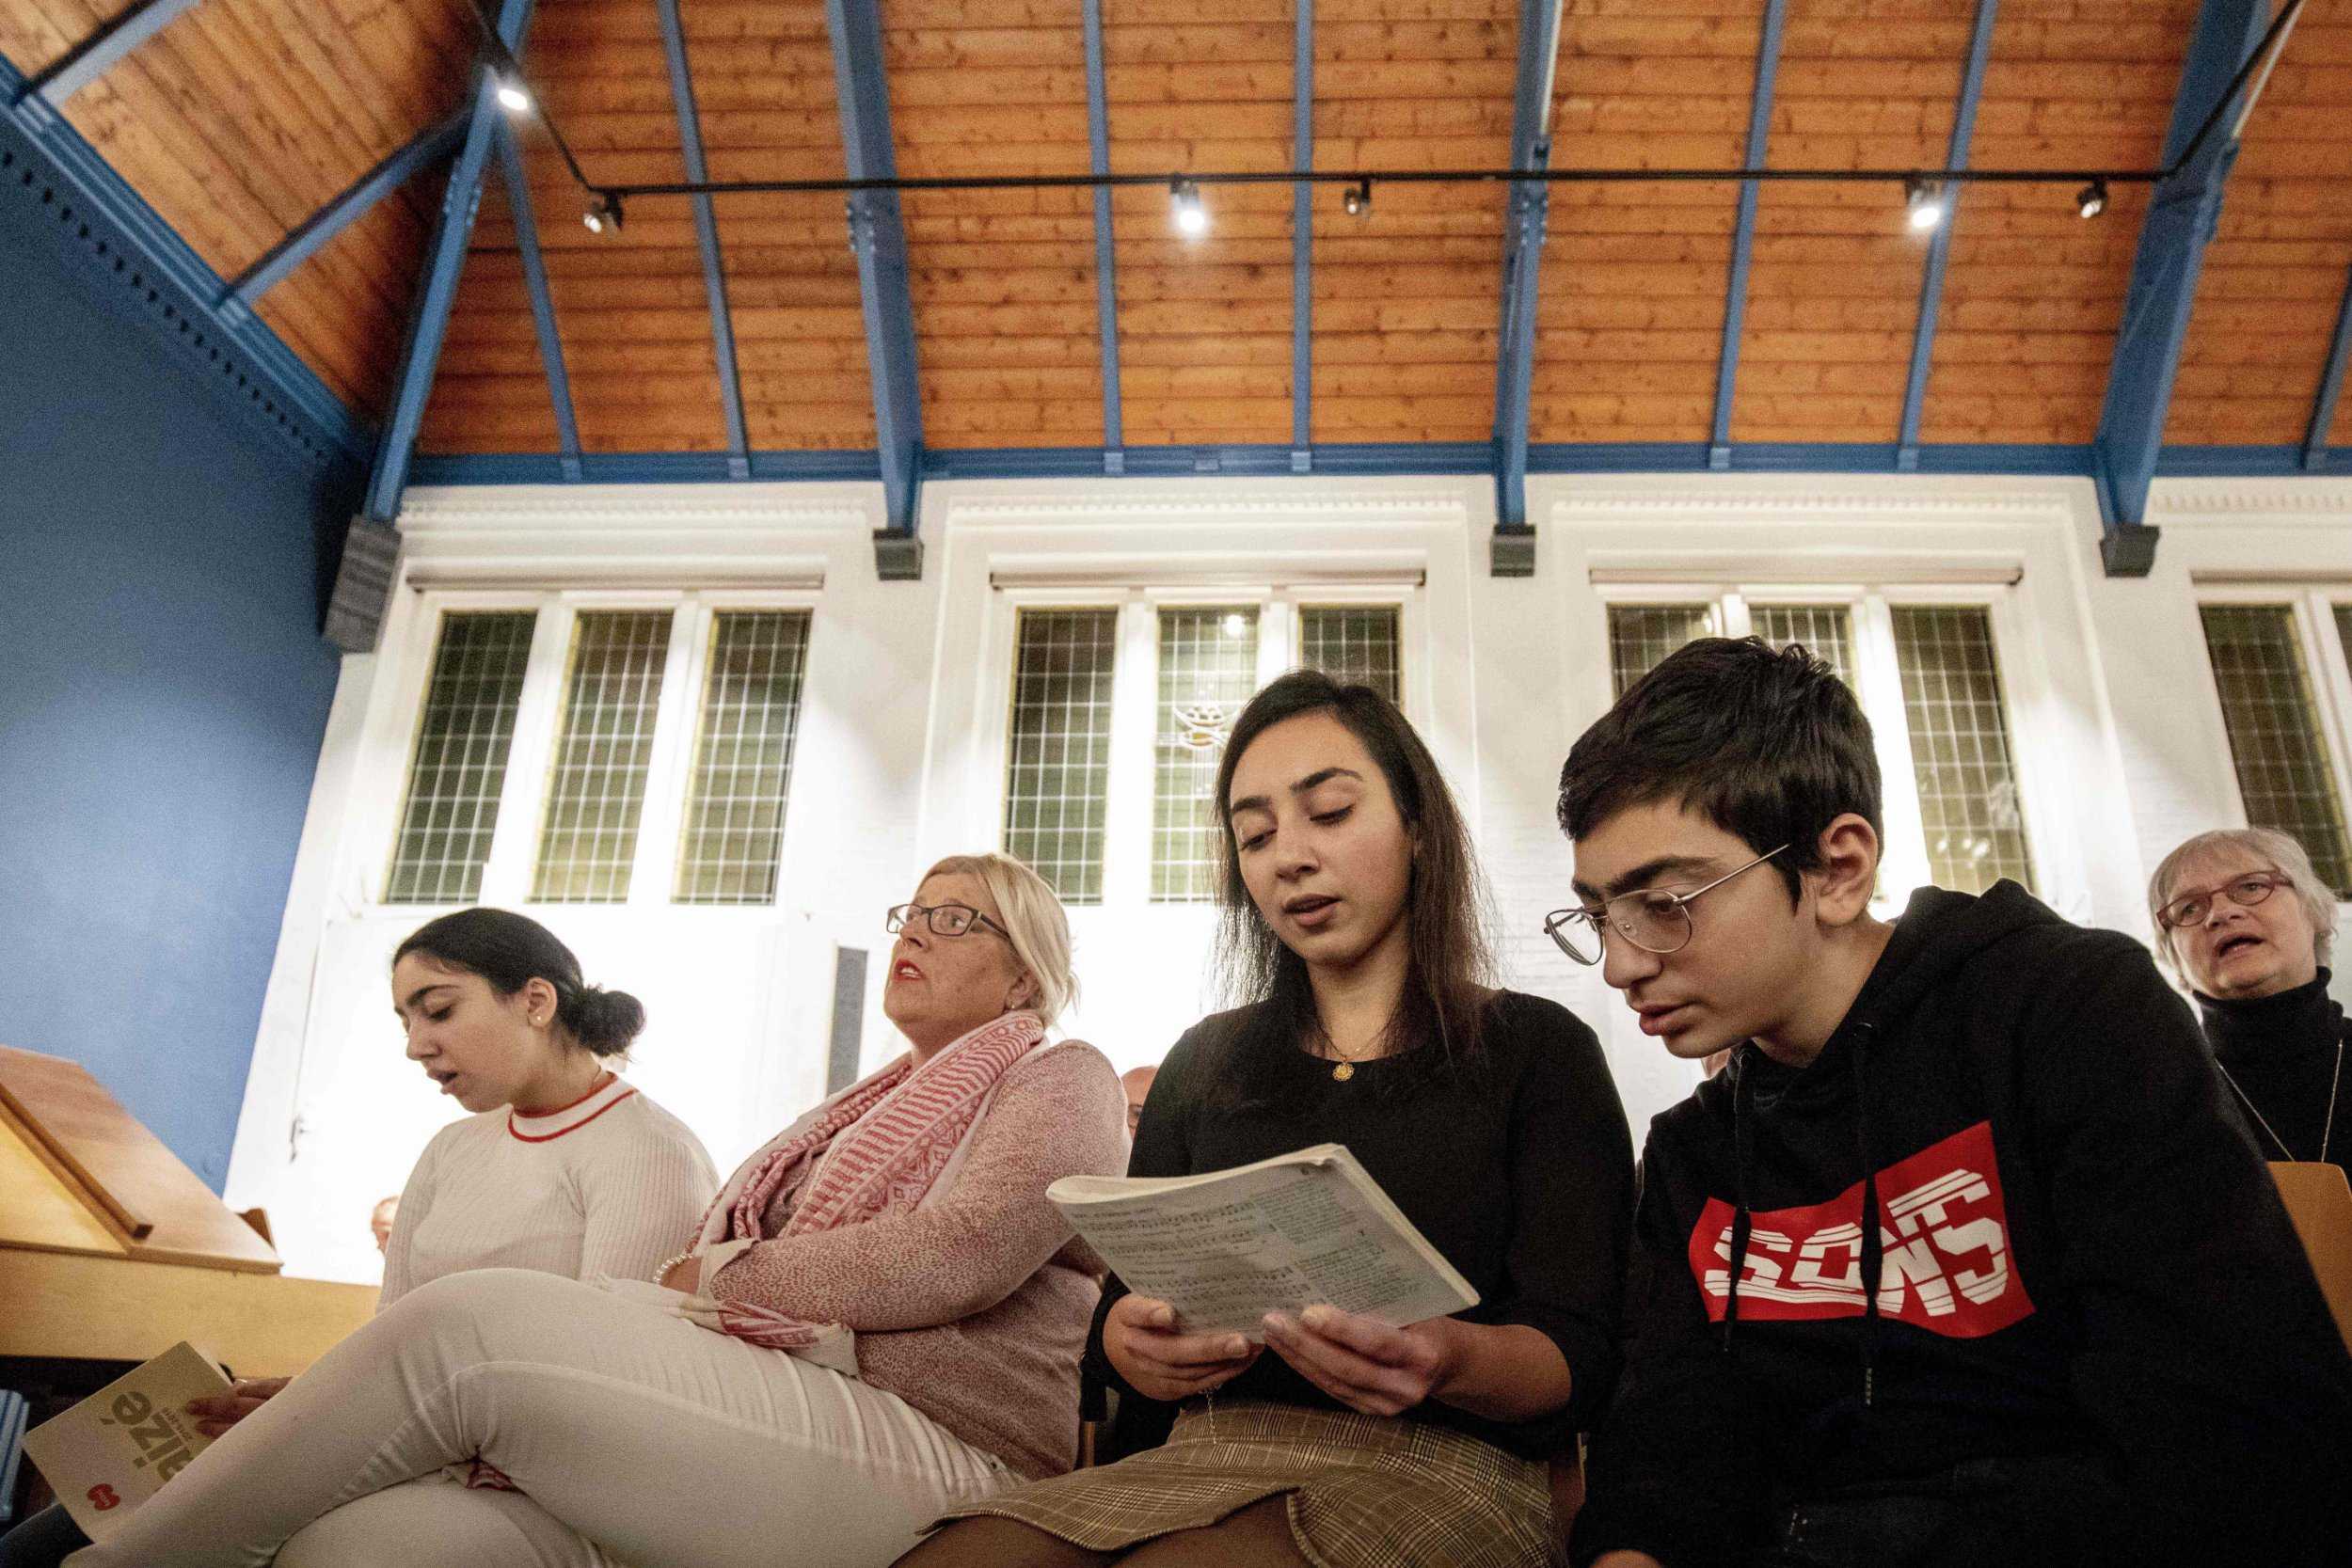 Armenian Hayarpi Tamrazyan (2ndR) and her brother Warduhi during a service in the Bethel church in The Hague, on October 30, 2018. - A Dutch church has resorted to the power of prayer to stop the deportation of an Armenian family sheltering there, holding round-the-clock religious services for more than a month to keep police at bay, officials said on November 30, 2018. The five members of the Tamrazyan family, who have been living in the Netherlands for nine years, took refuge in the church on October 25, 2018 after Dutch authorities turned down their request for asylum. (Photo by Niels Wenstedt / POOL / AFP) / Netherlands OUT - Belgium OUTNIELS WENSTEDT/AFP/Getty Images